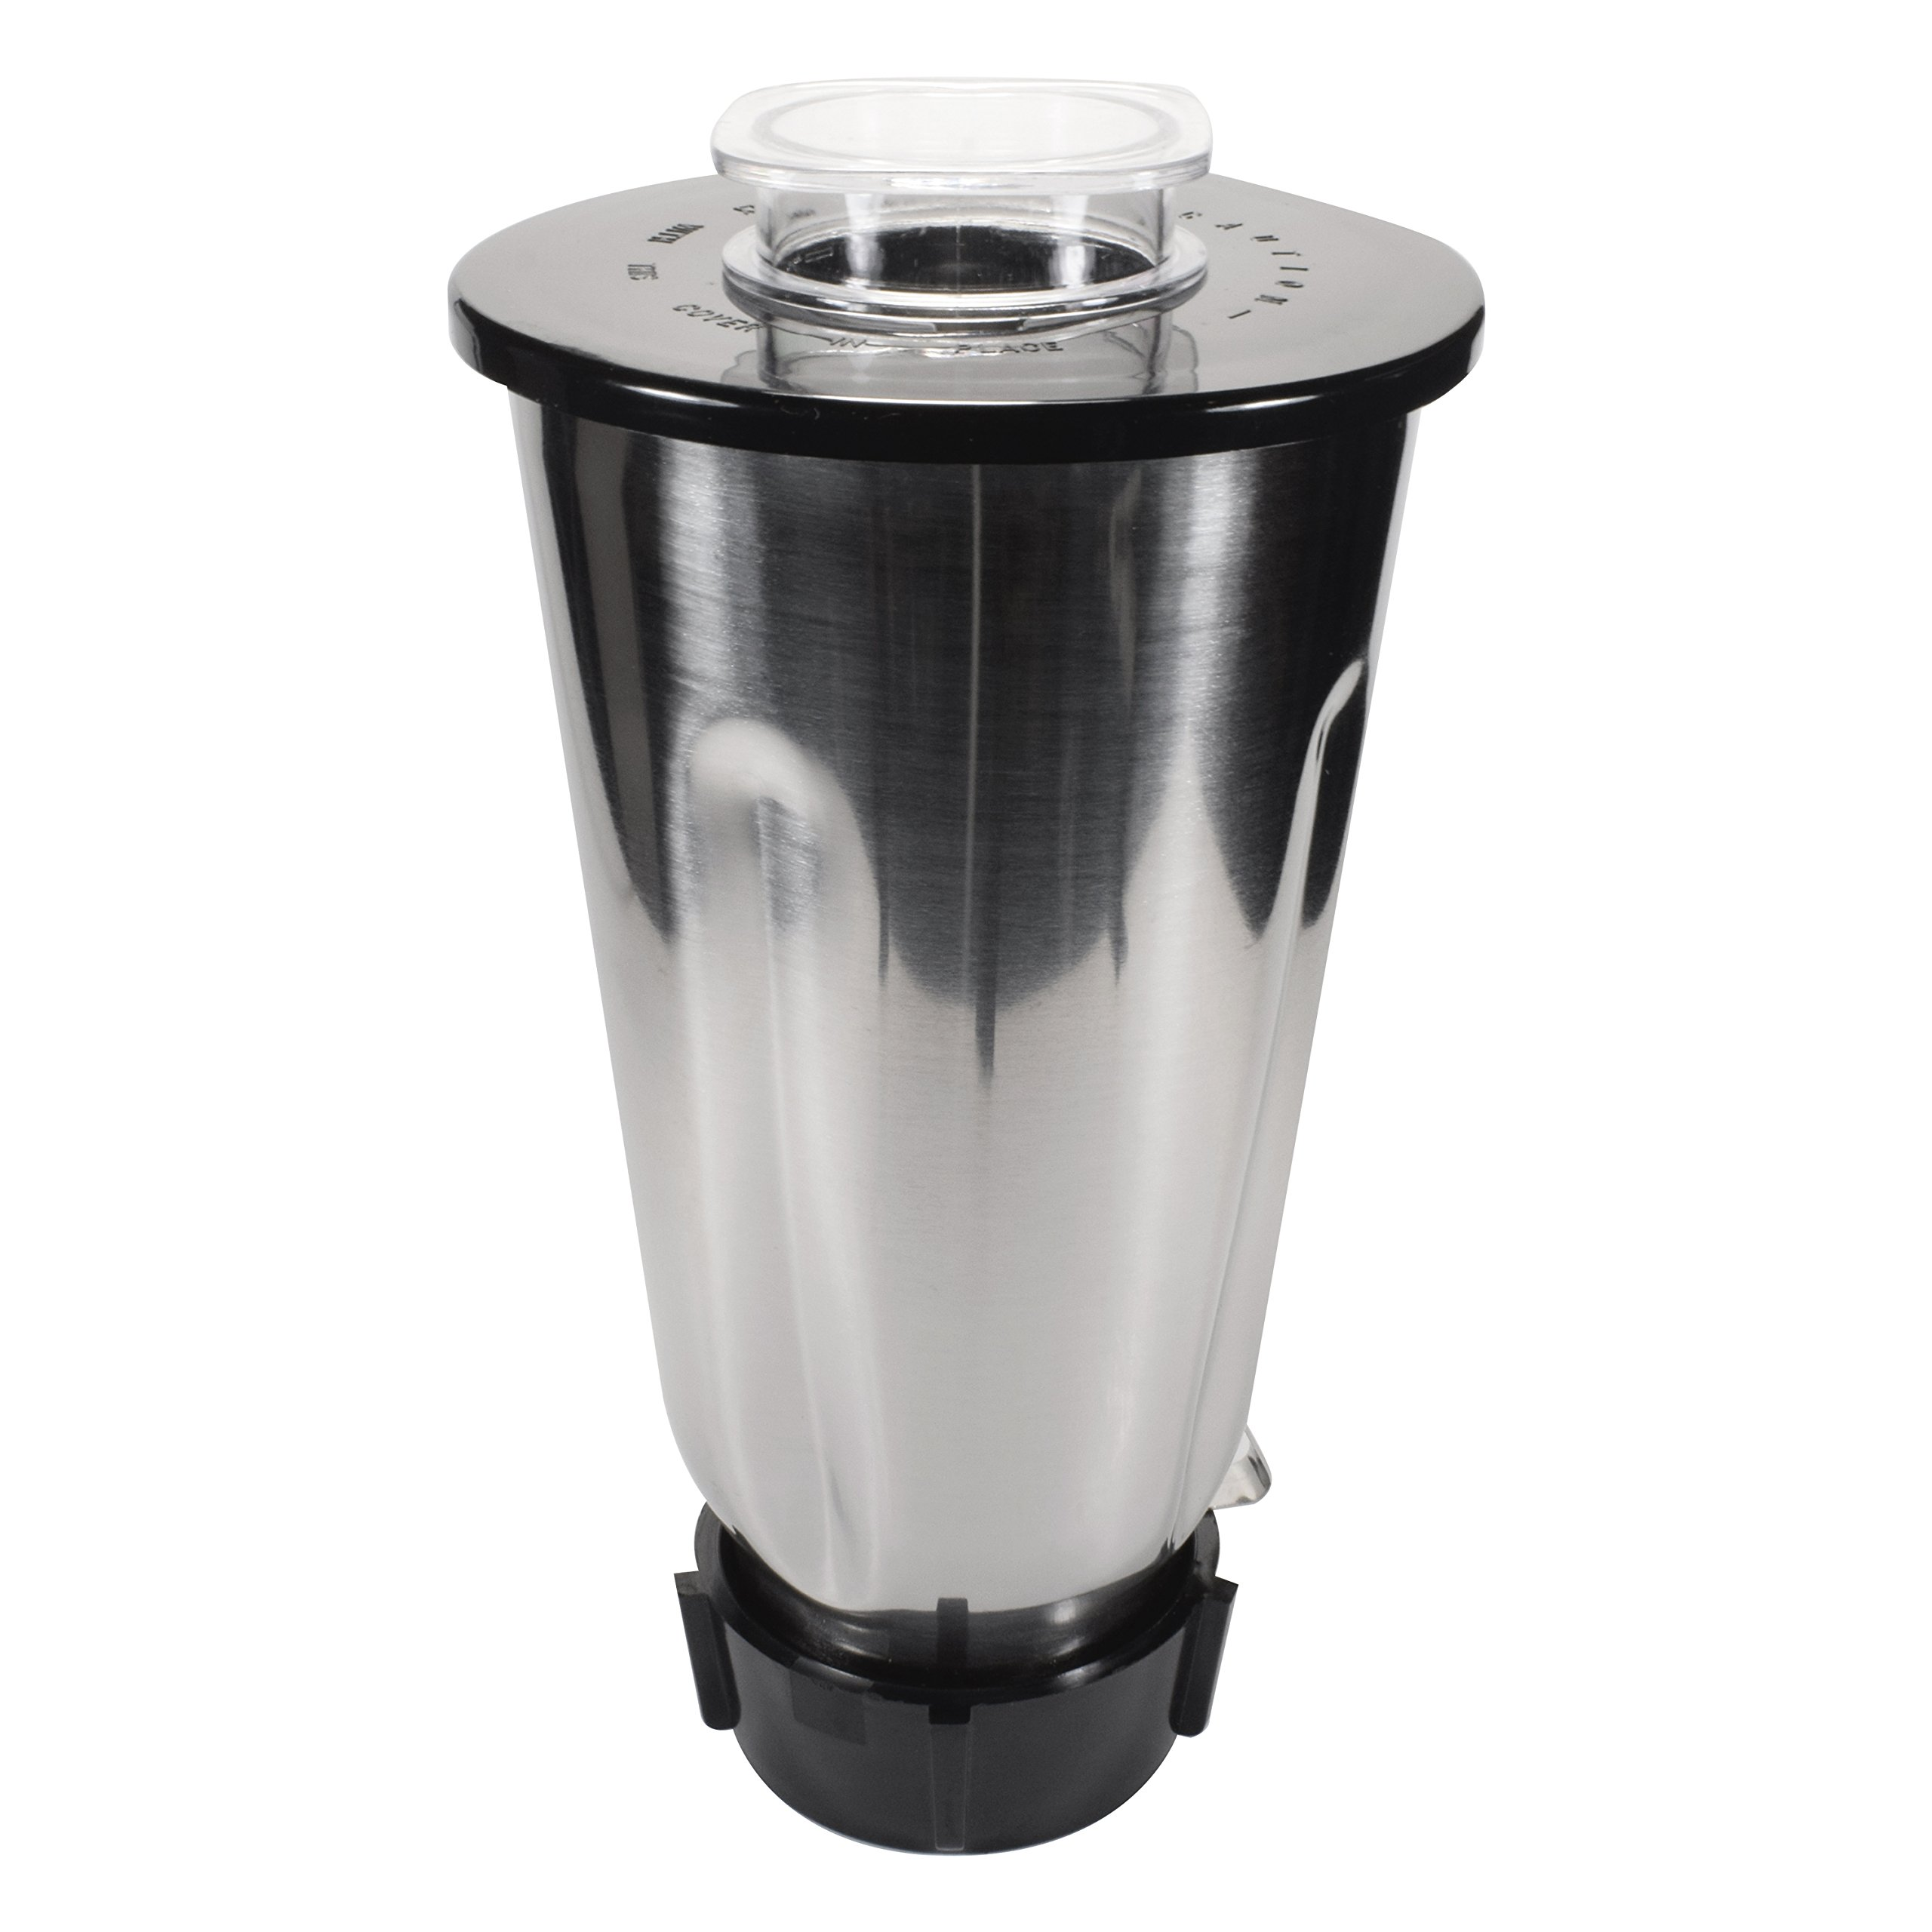 Univen Stainless Steel Blender Jar with Lid and Bottom cap fits Oster & Osterizer